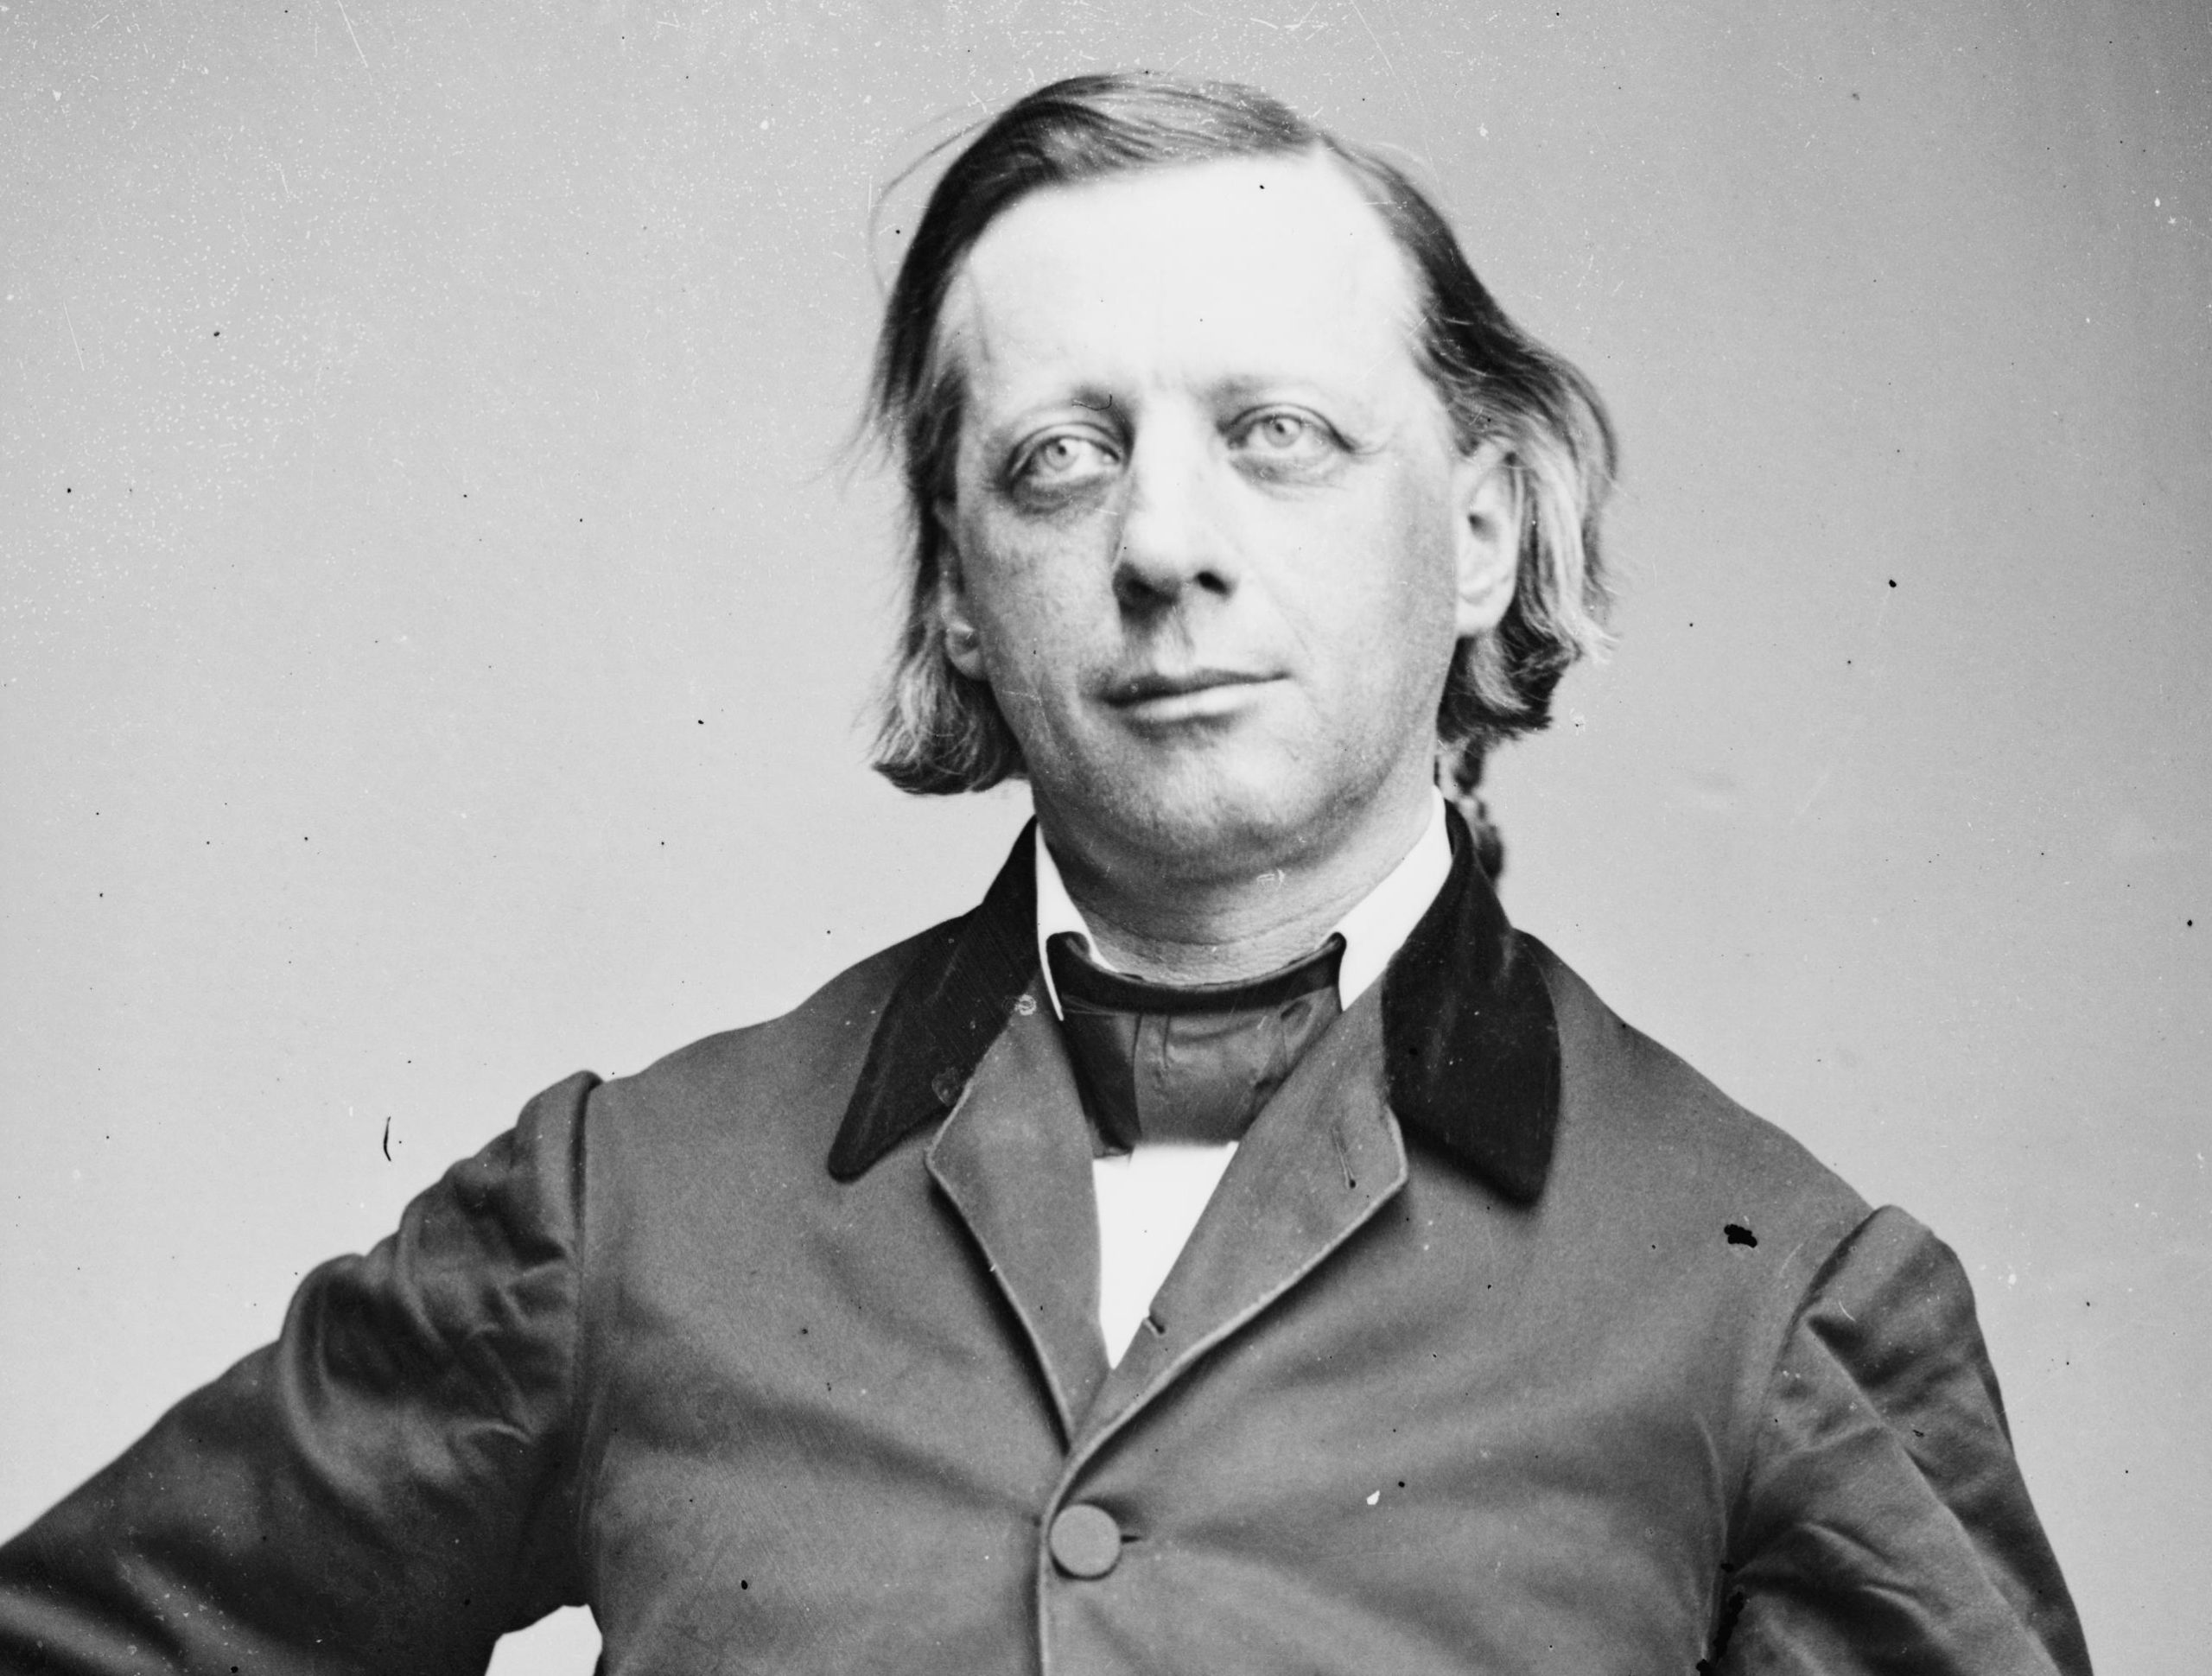 Photo of Henry Ward Beecher |  Source: Library of Congress Prints and Photographs Division